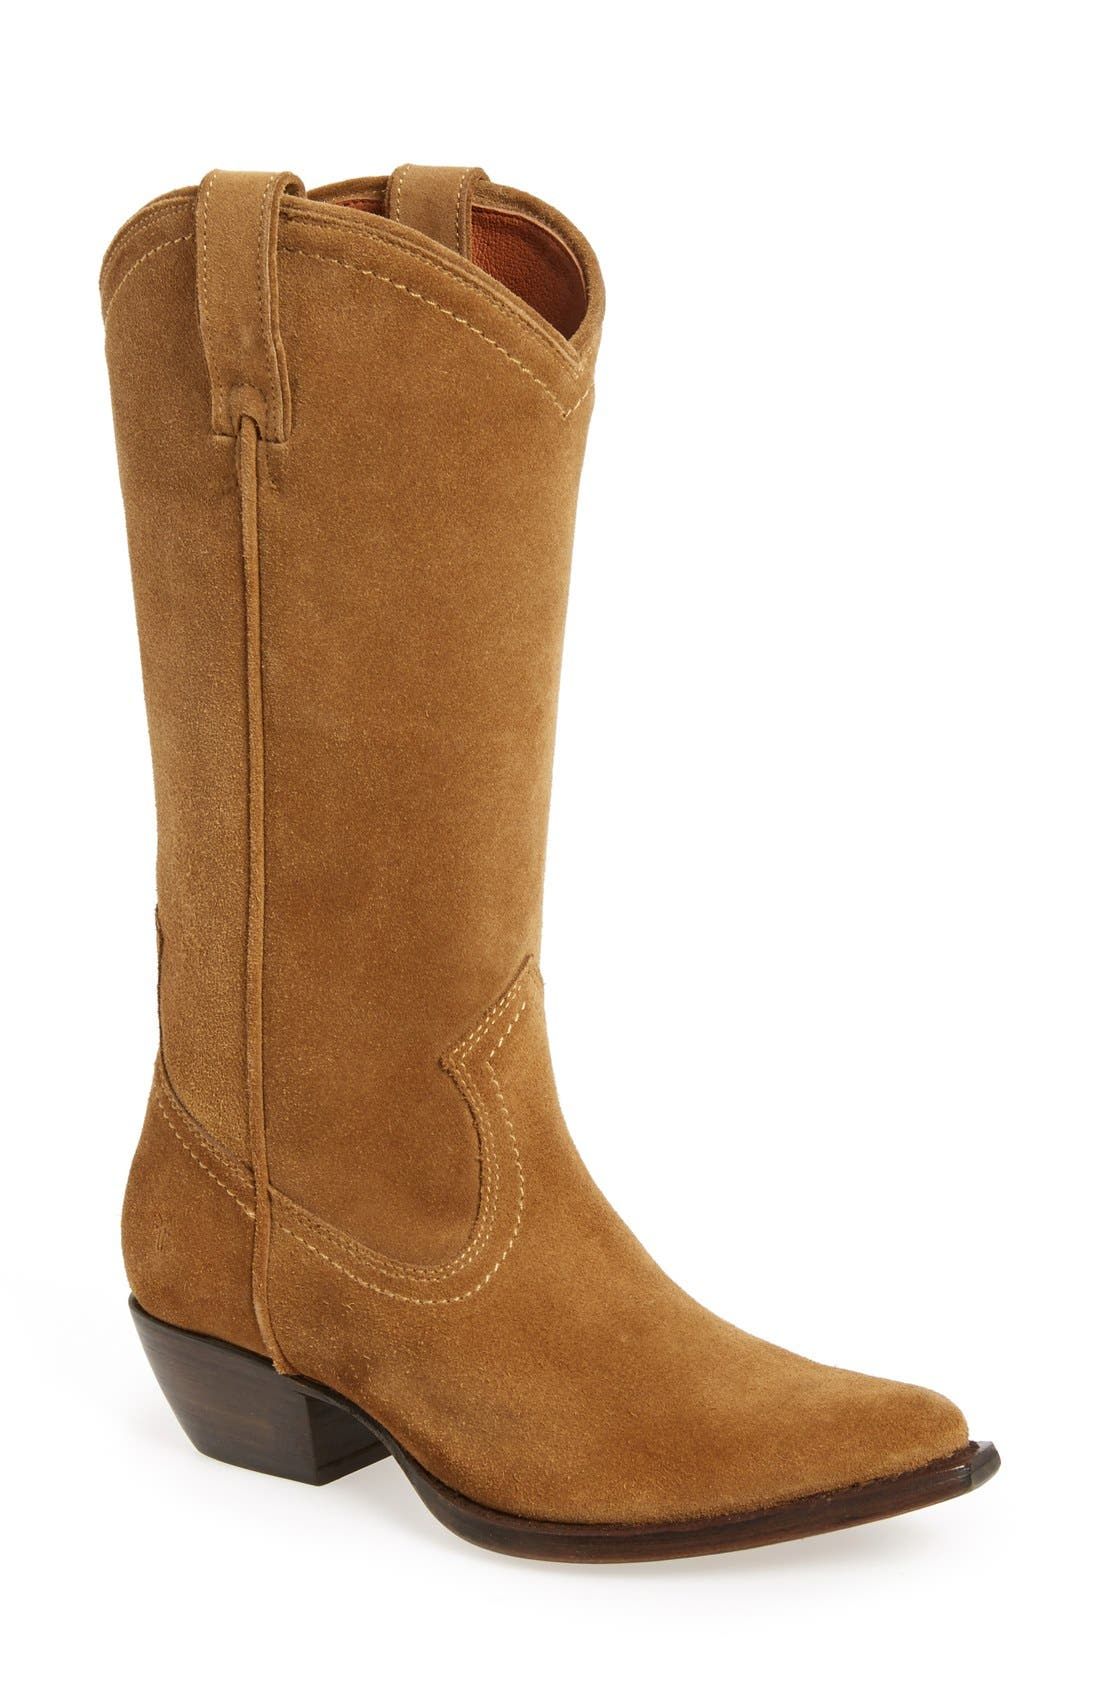 Main Image - Frye 'Sacha' Boot (Women)